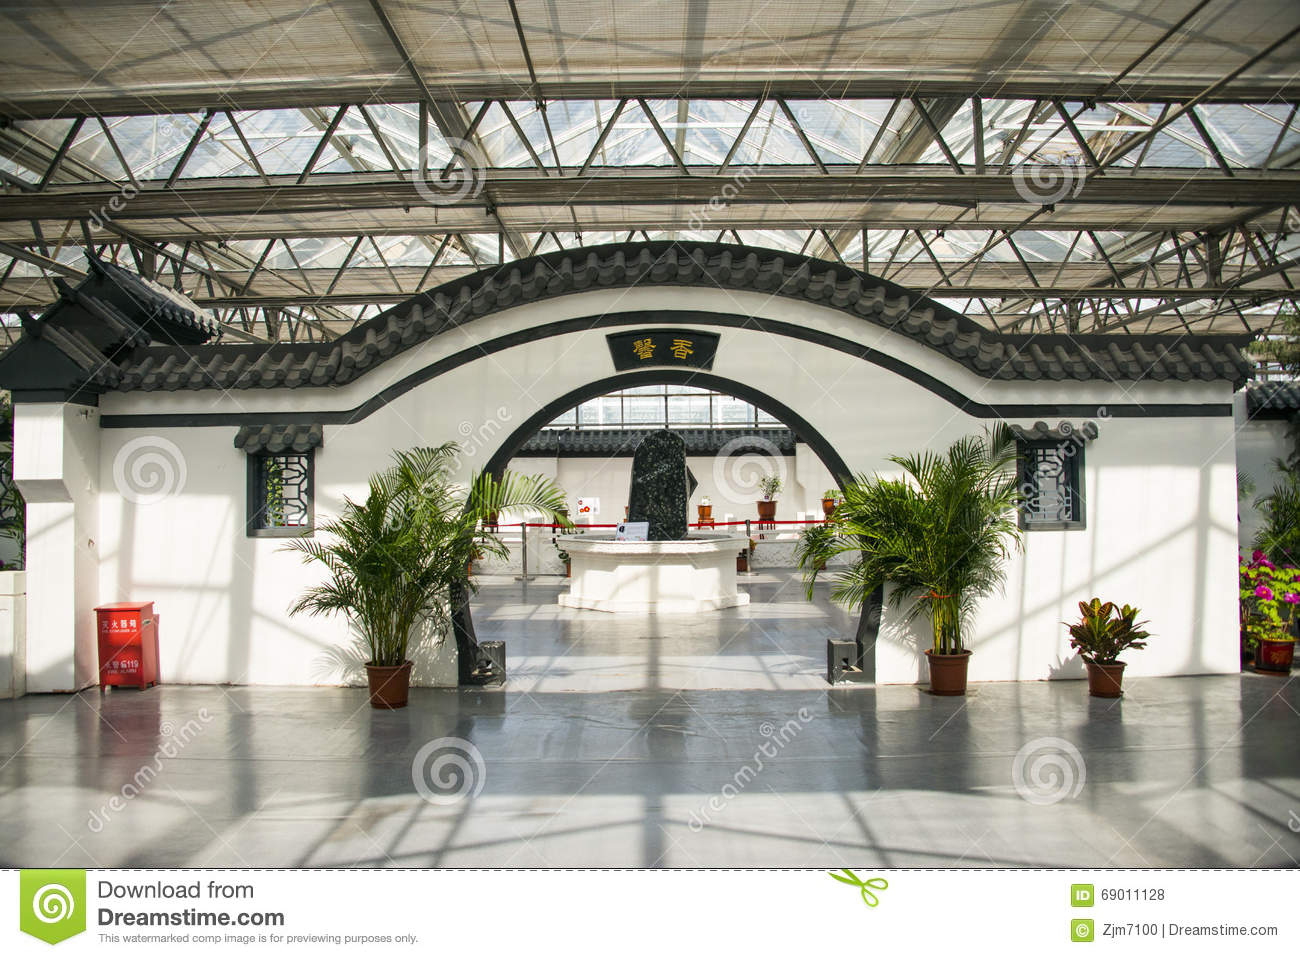 Asia china beijing agricultural carnival modern for Architecture antique